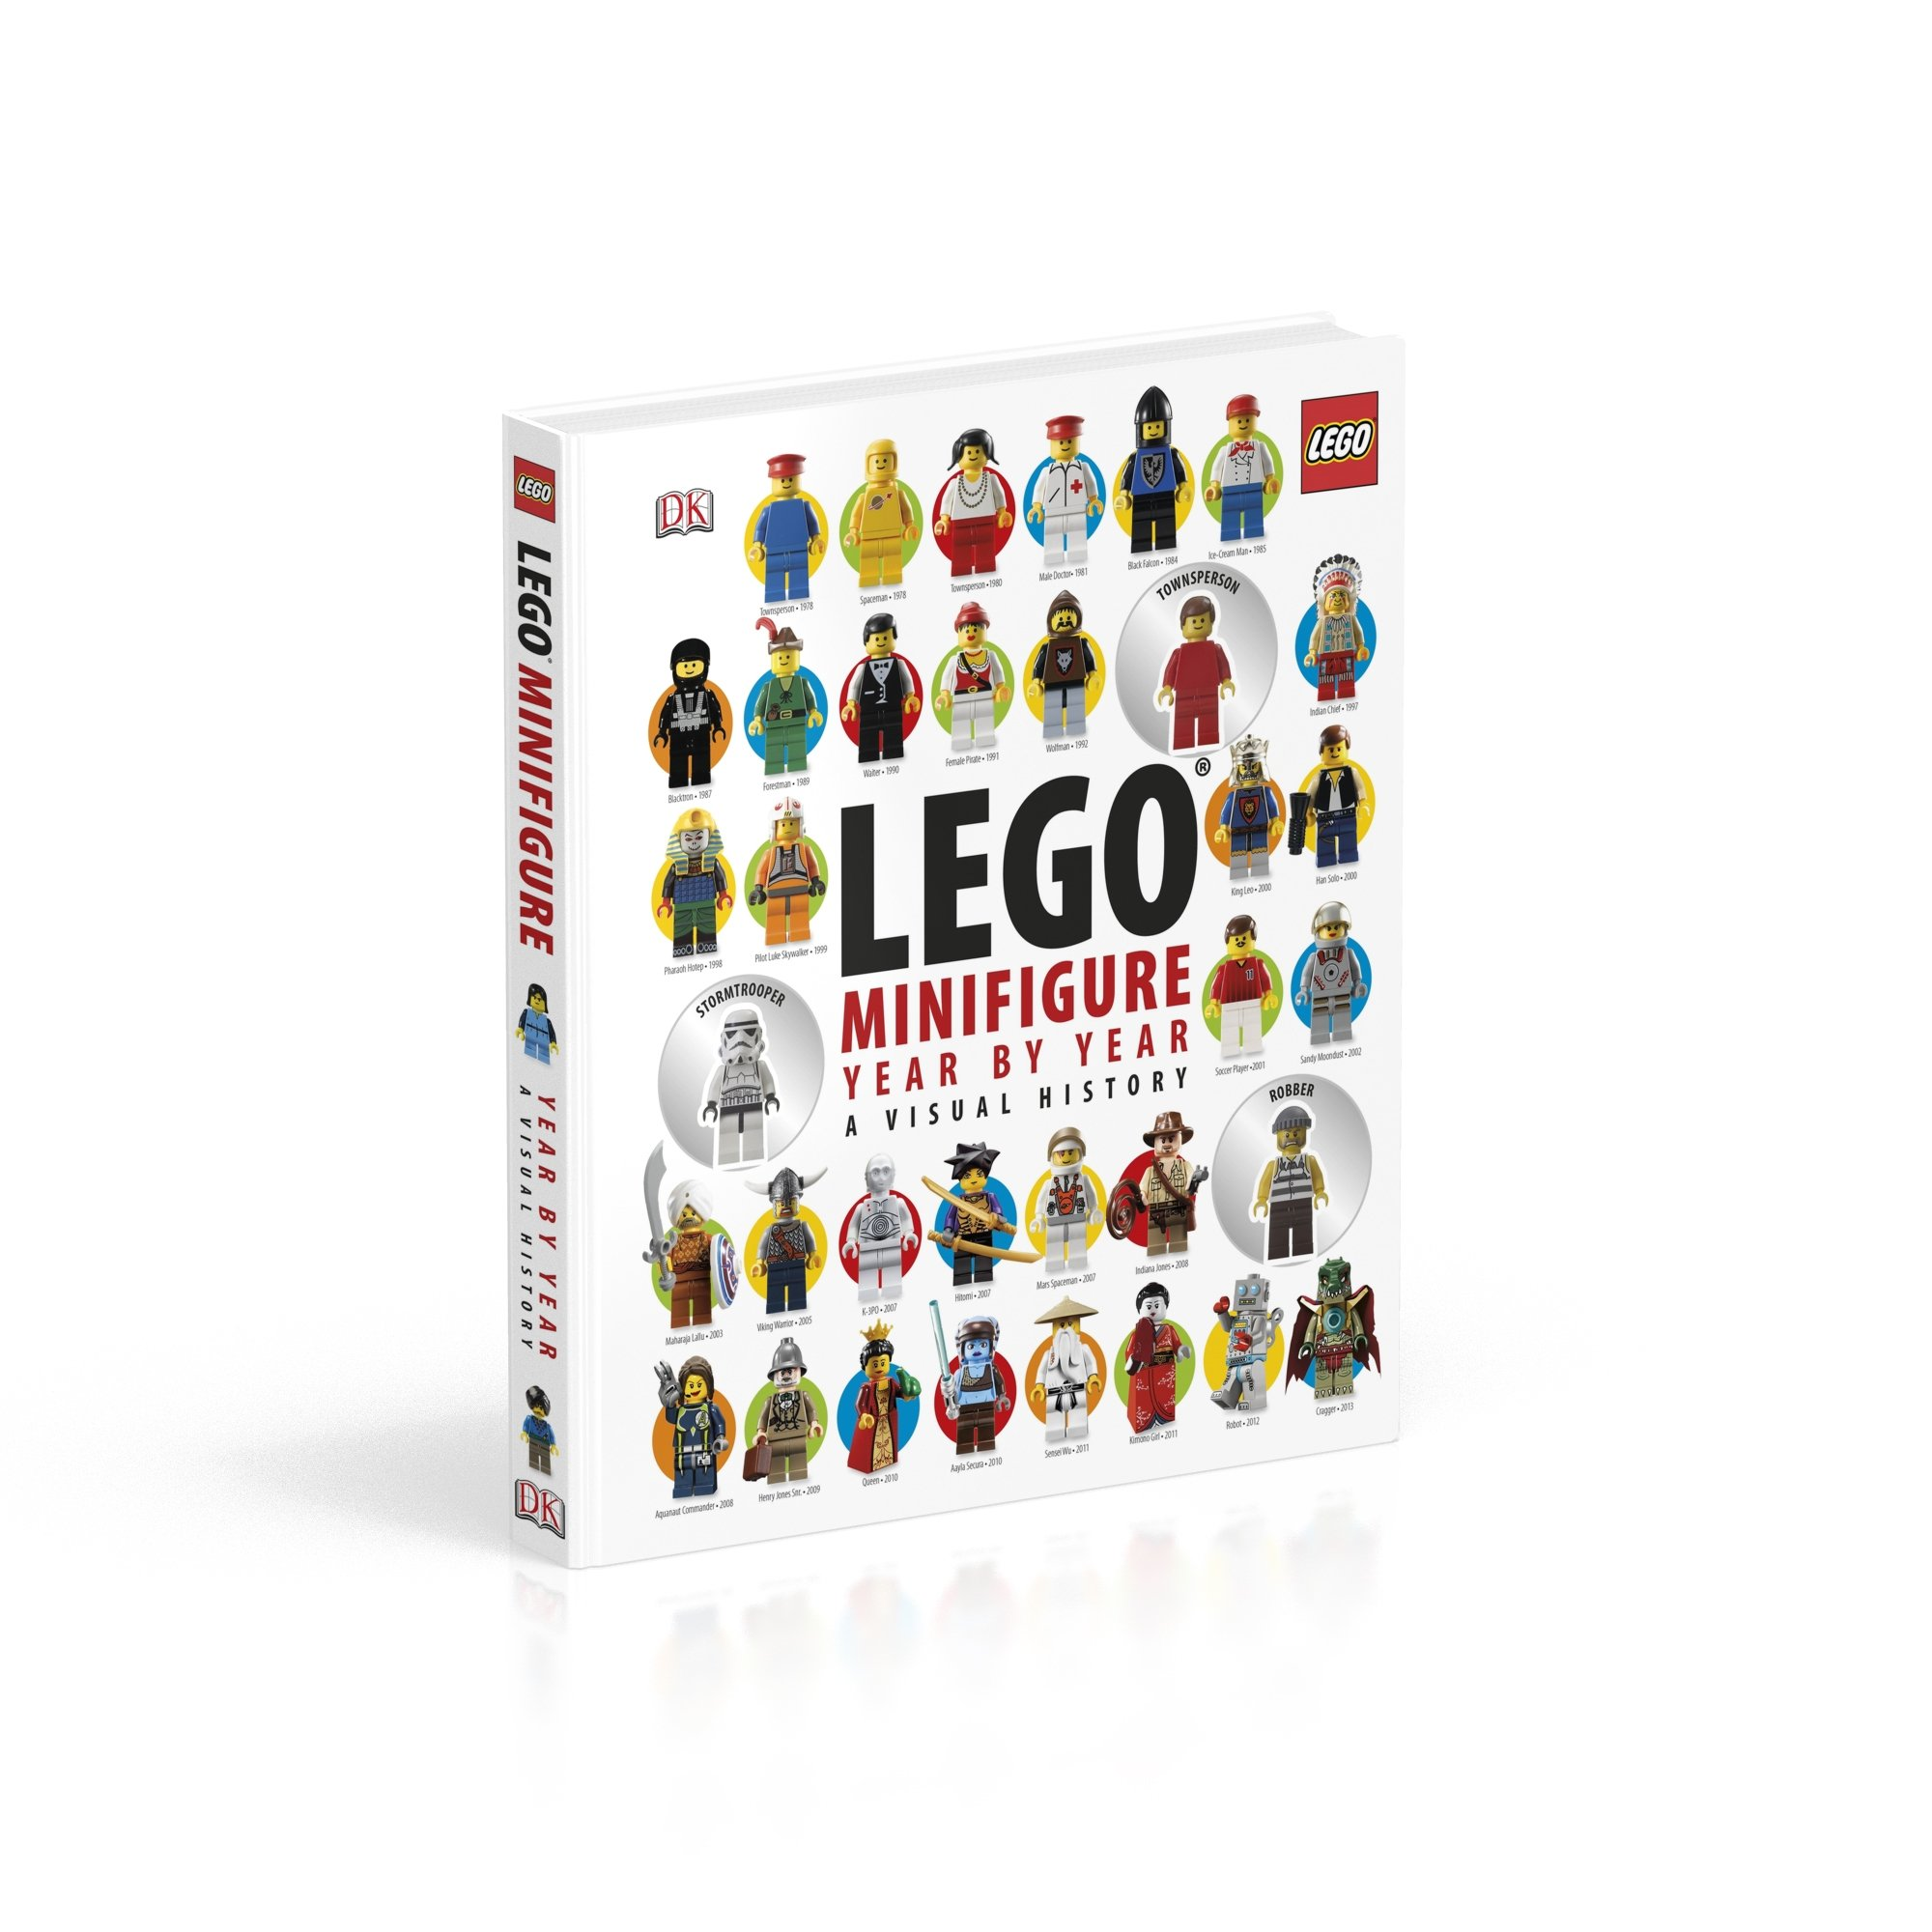 LEGO® Minifigure Year by Year A Visual History: With 3 Minifigures Dk Lego: Amazon.es: DK, Gregory Farshtey, Daniel Lipkowitz: Libros en idiomas extranjeros